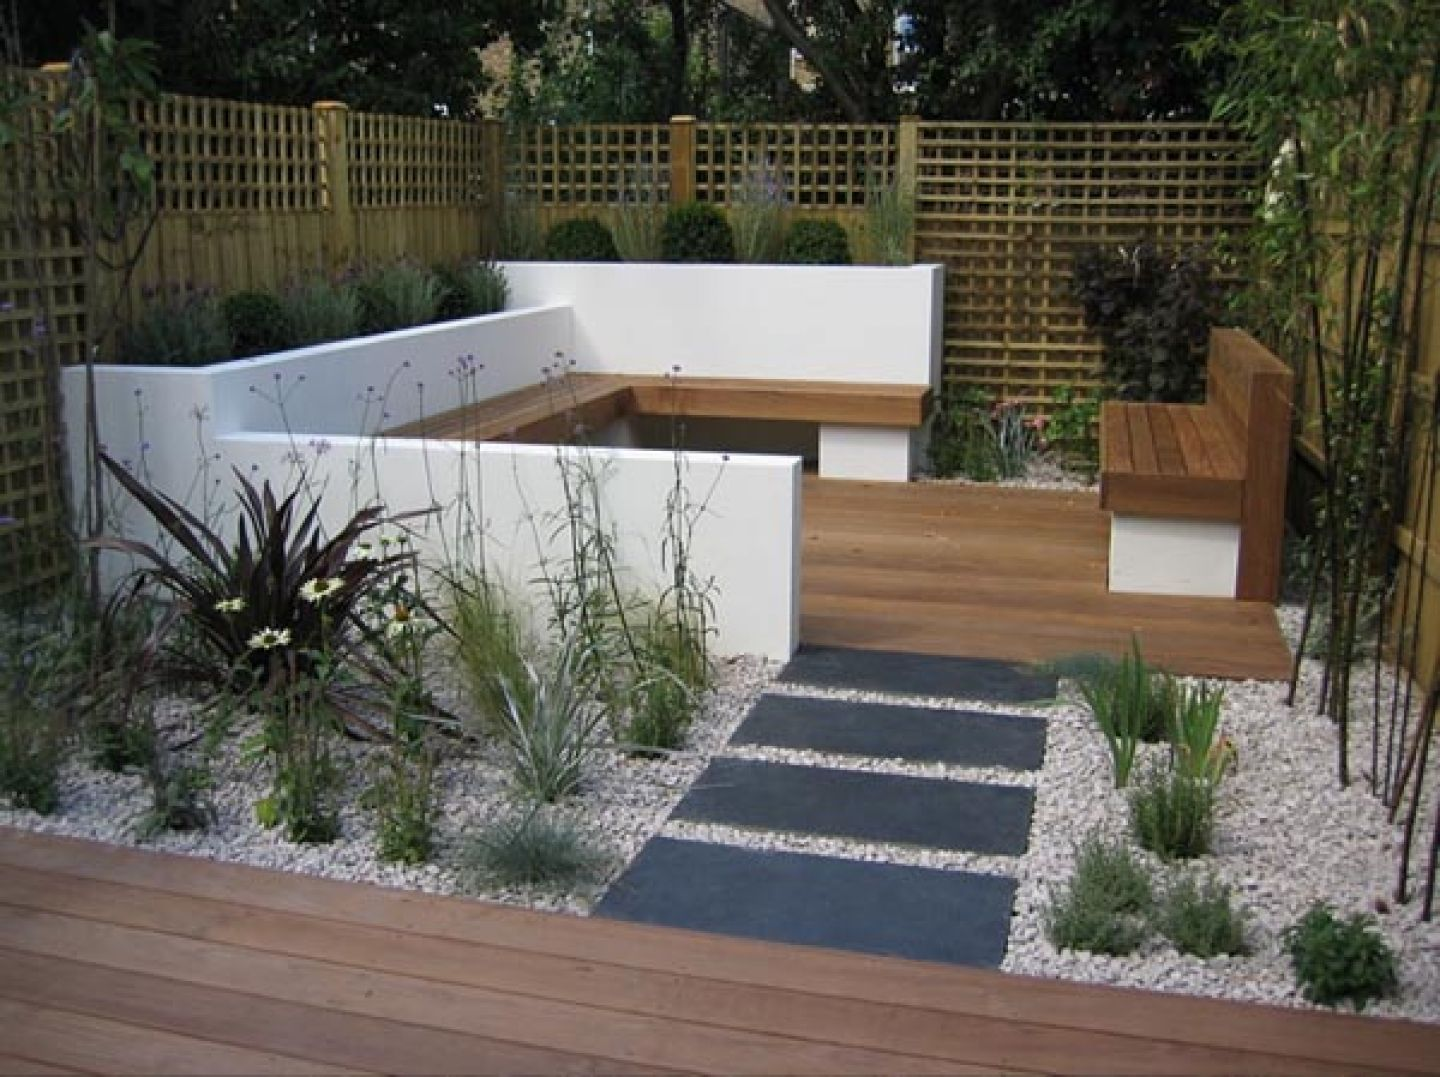 Maximize the impact of minimal yards with these small for Small modern garden design ideas